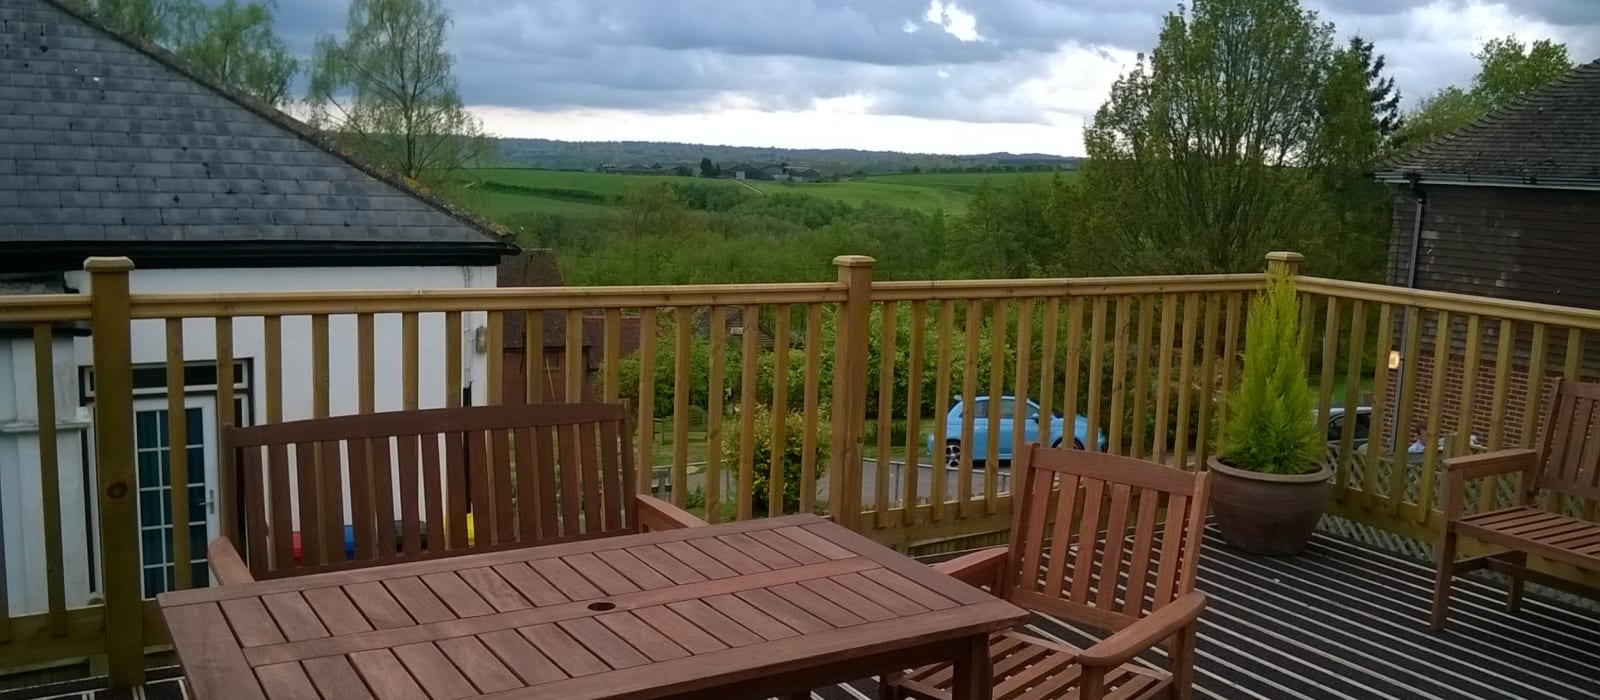 garden view at Fern residential care home